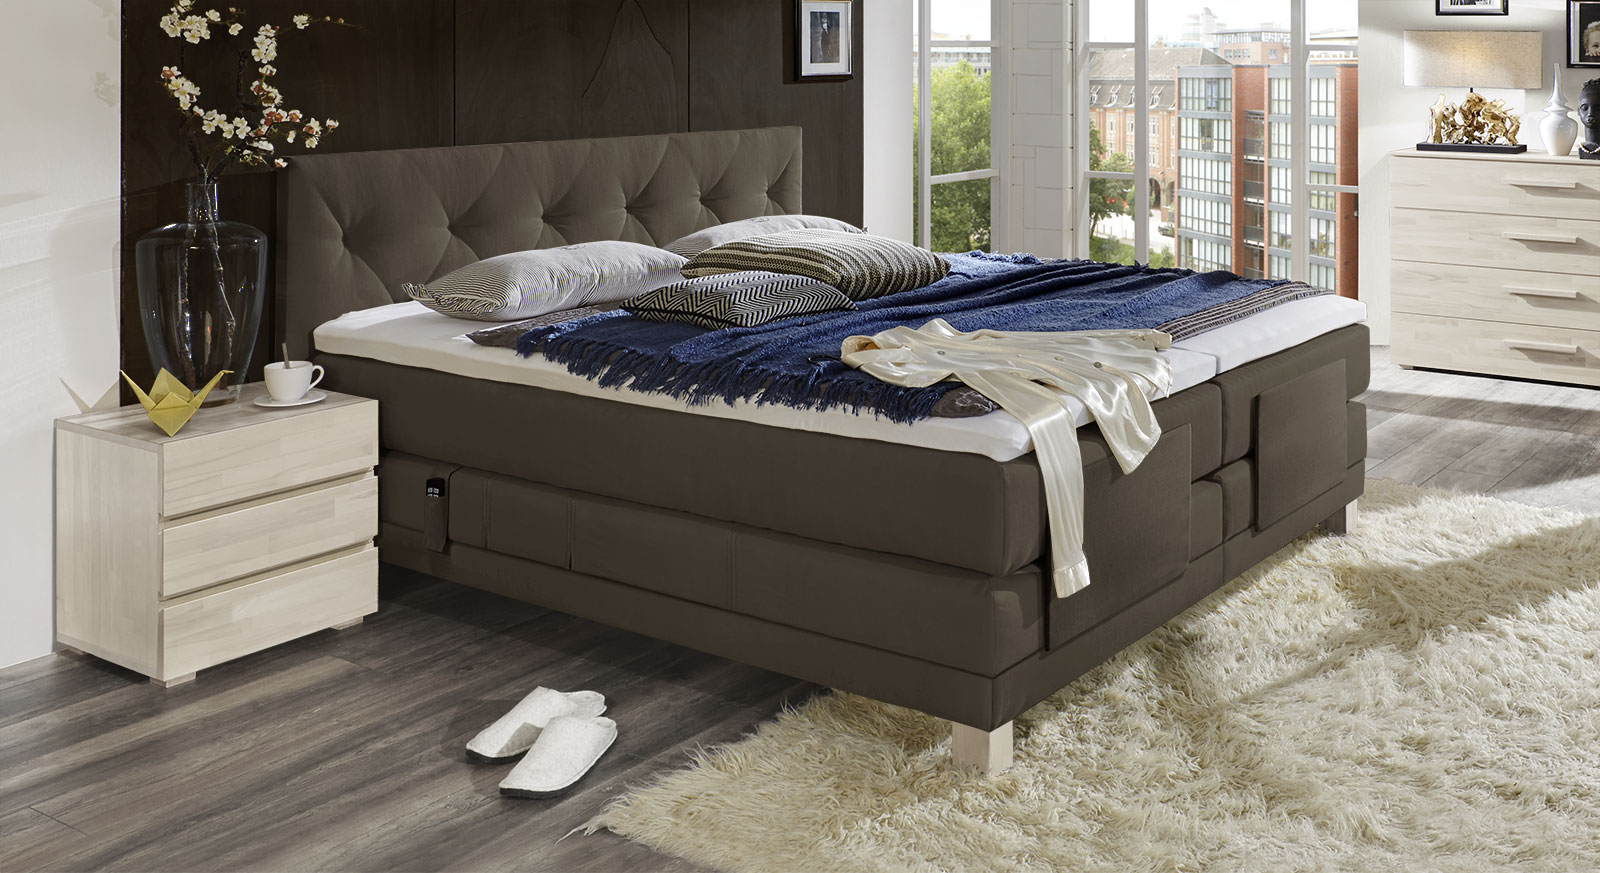 boxspringbett mit motor verstellbar cantabria elektro. Black Bedroom Furniture Sets. Home Design Ideas